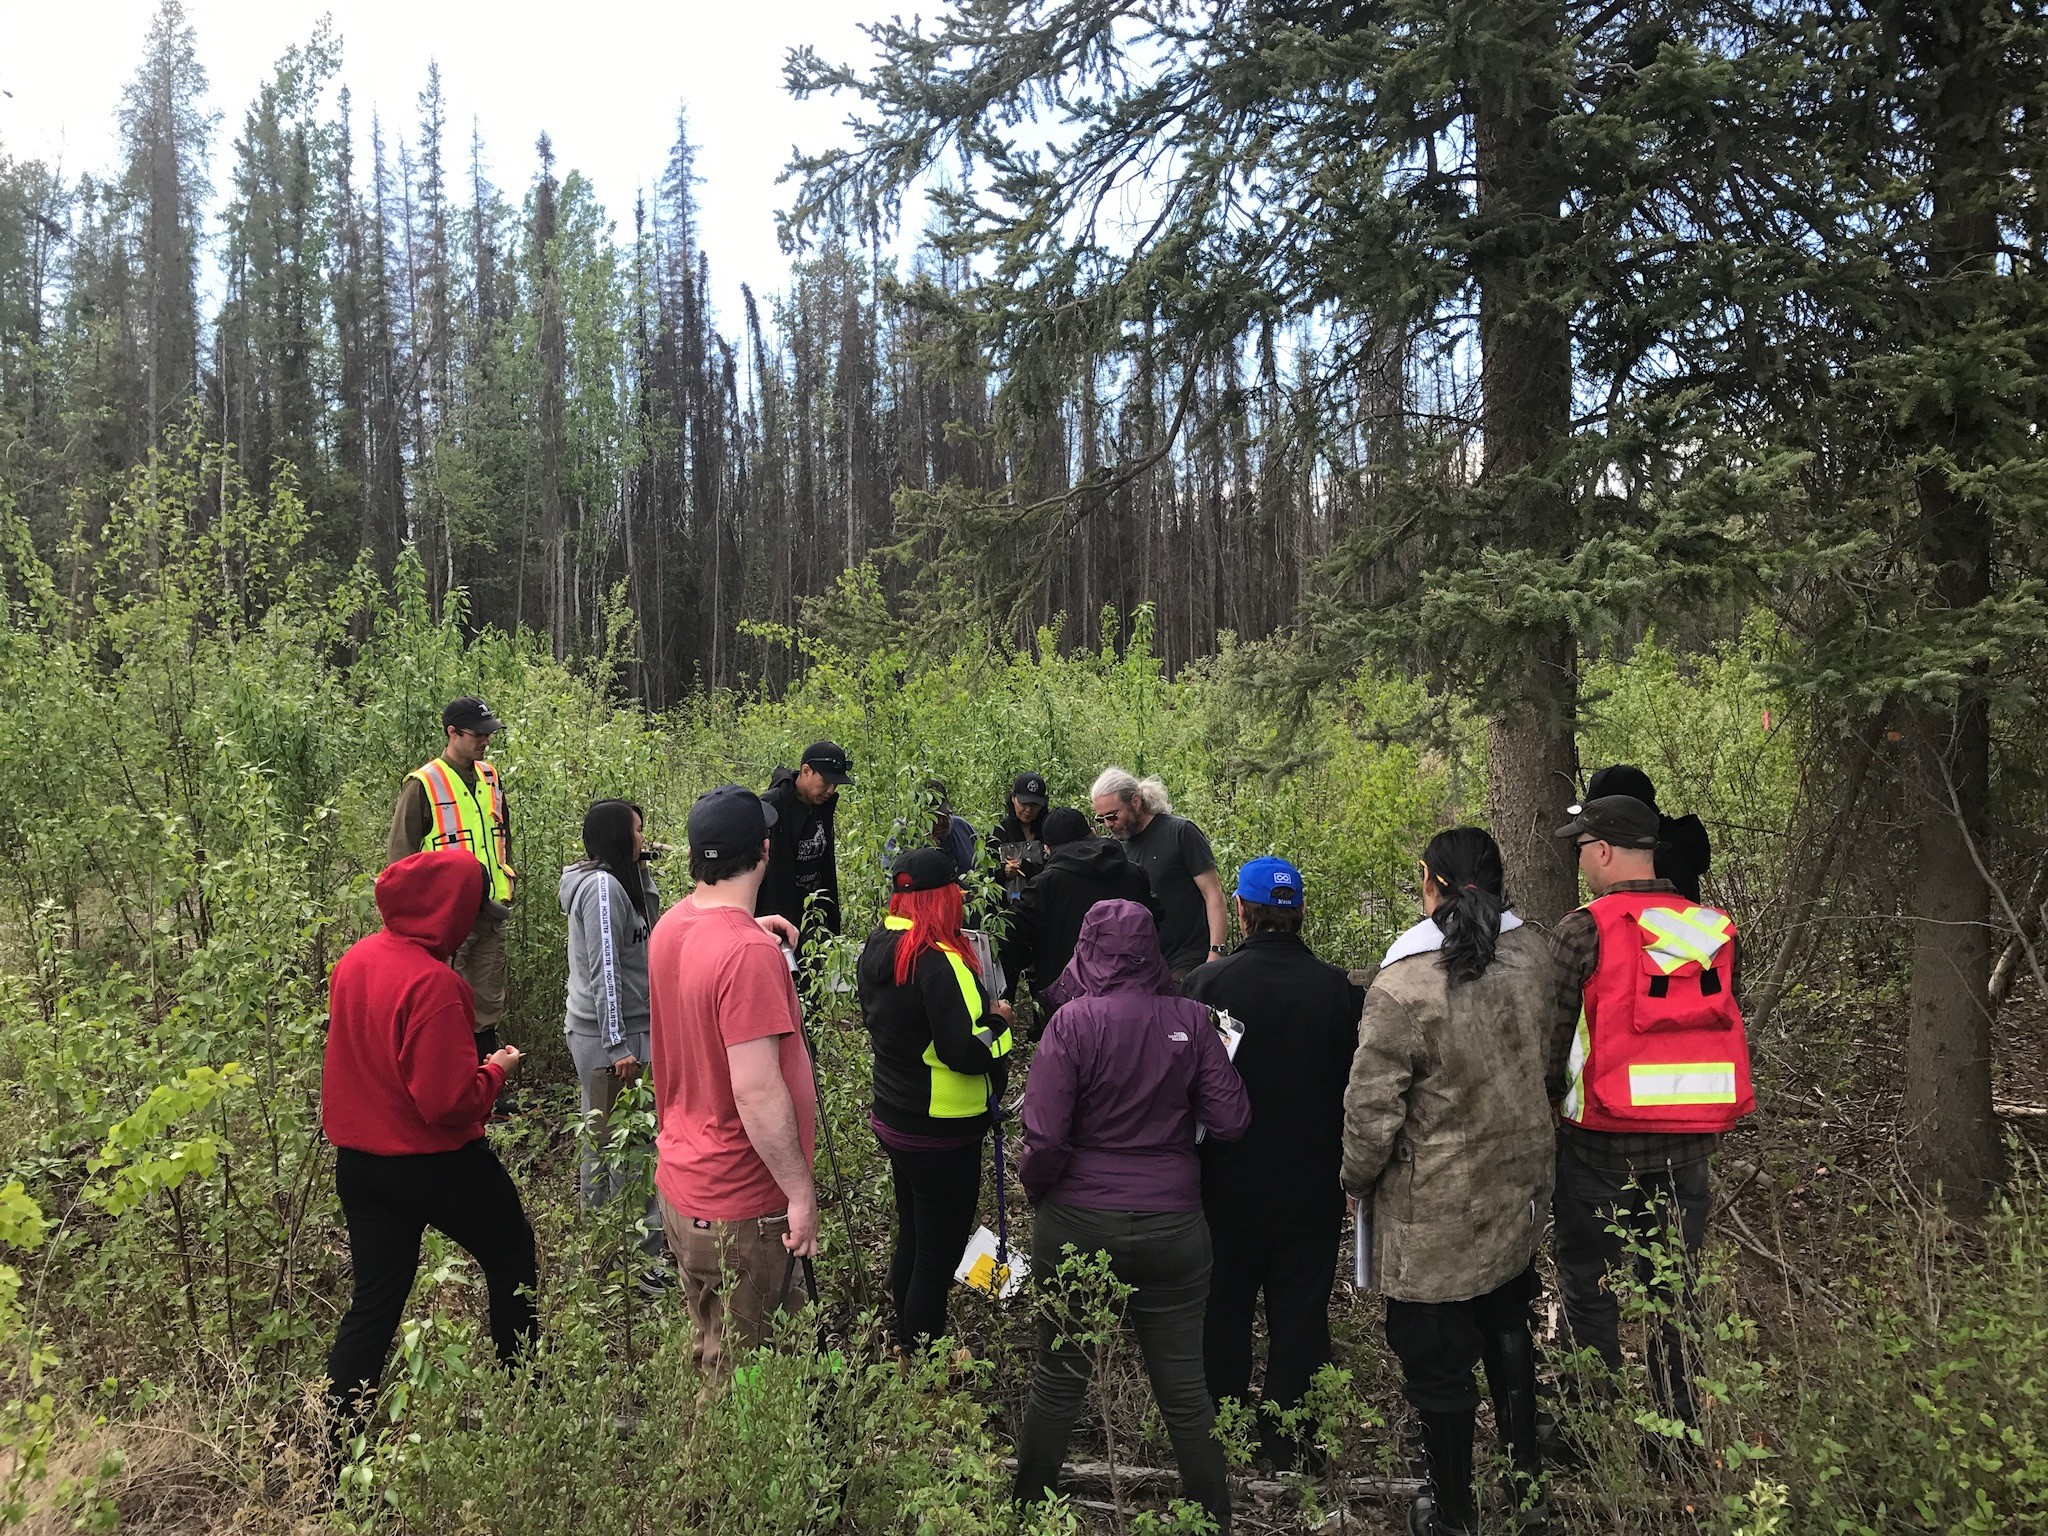 Dehcho Pipeline Guardians take part in wildlife protection training for the Line 21 oil pipeline project with SVS environmental specialists